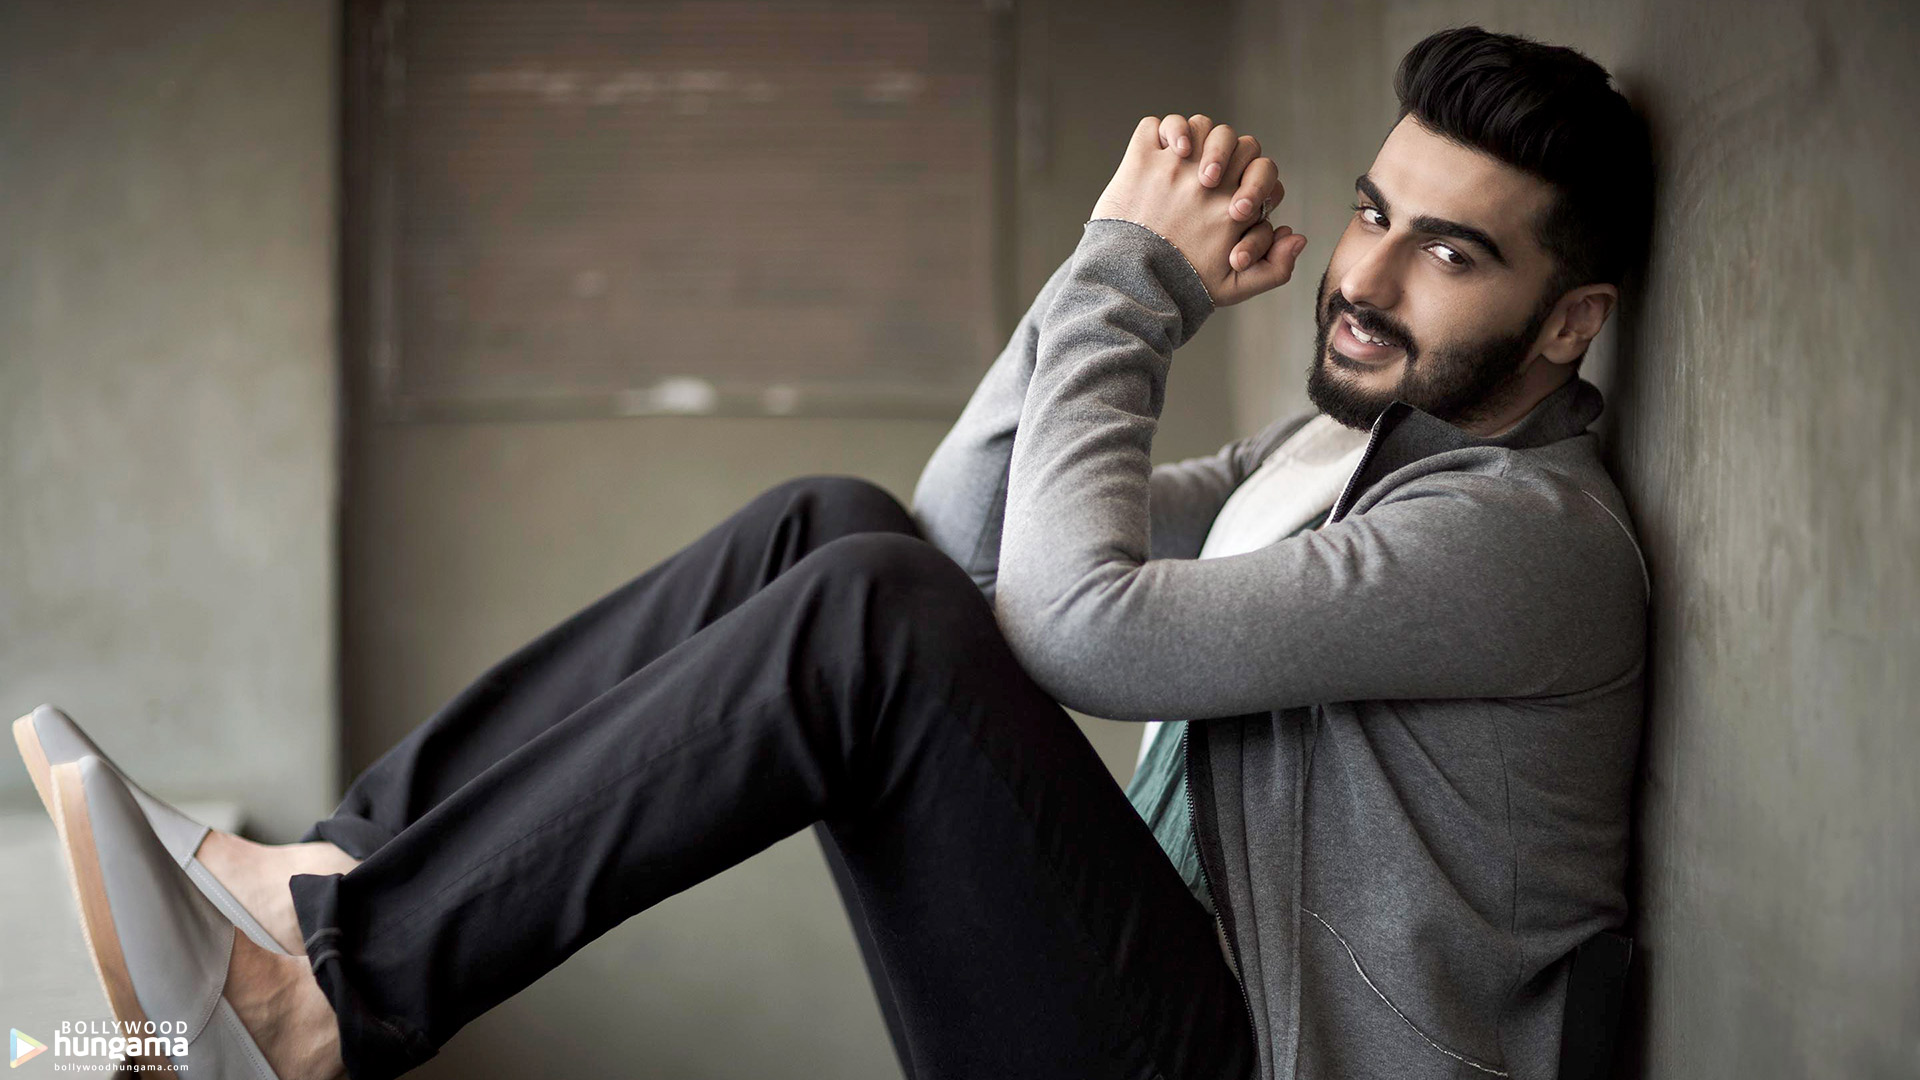 Arjun Kapoor Wallpapers arjun kapoor 7   Bollywood Hungama 1920x1080